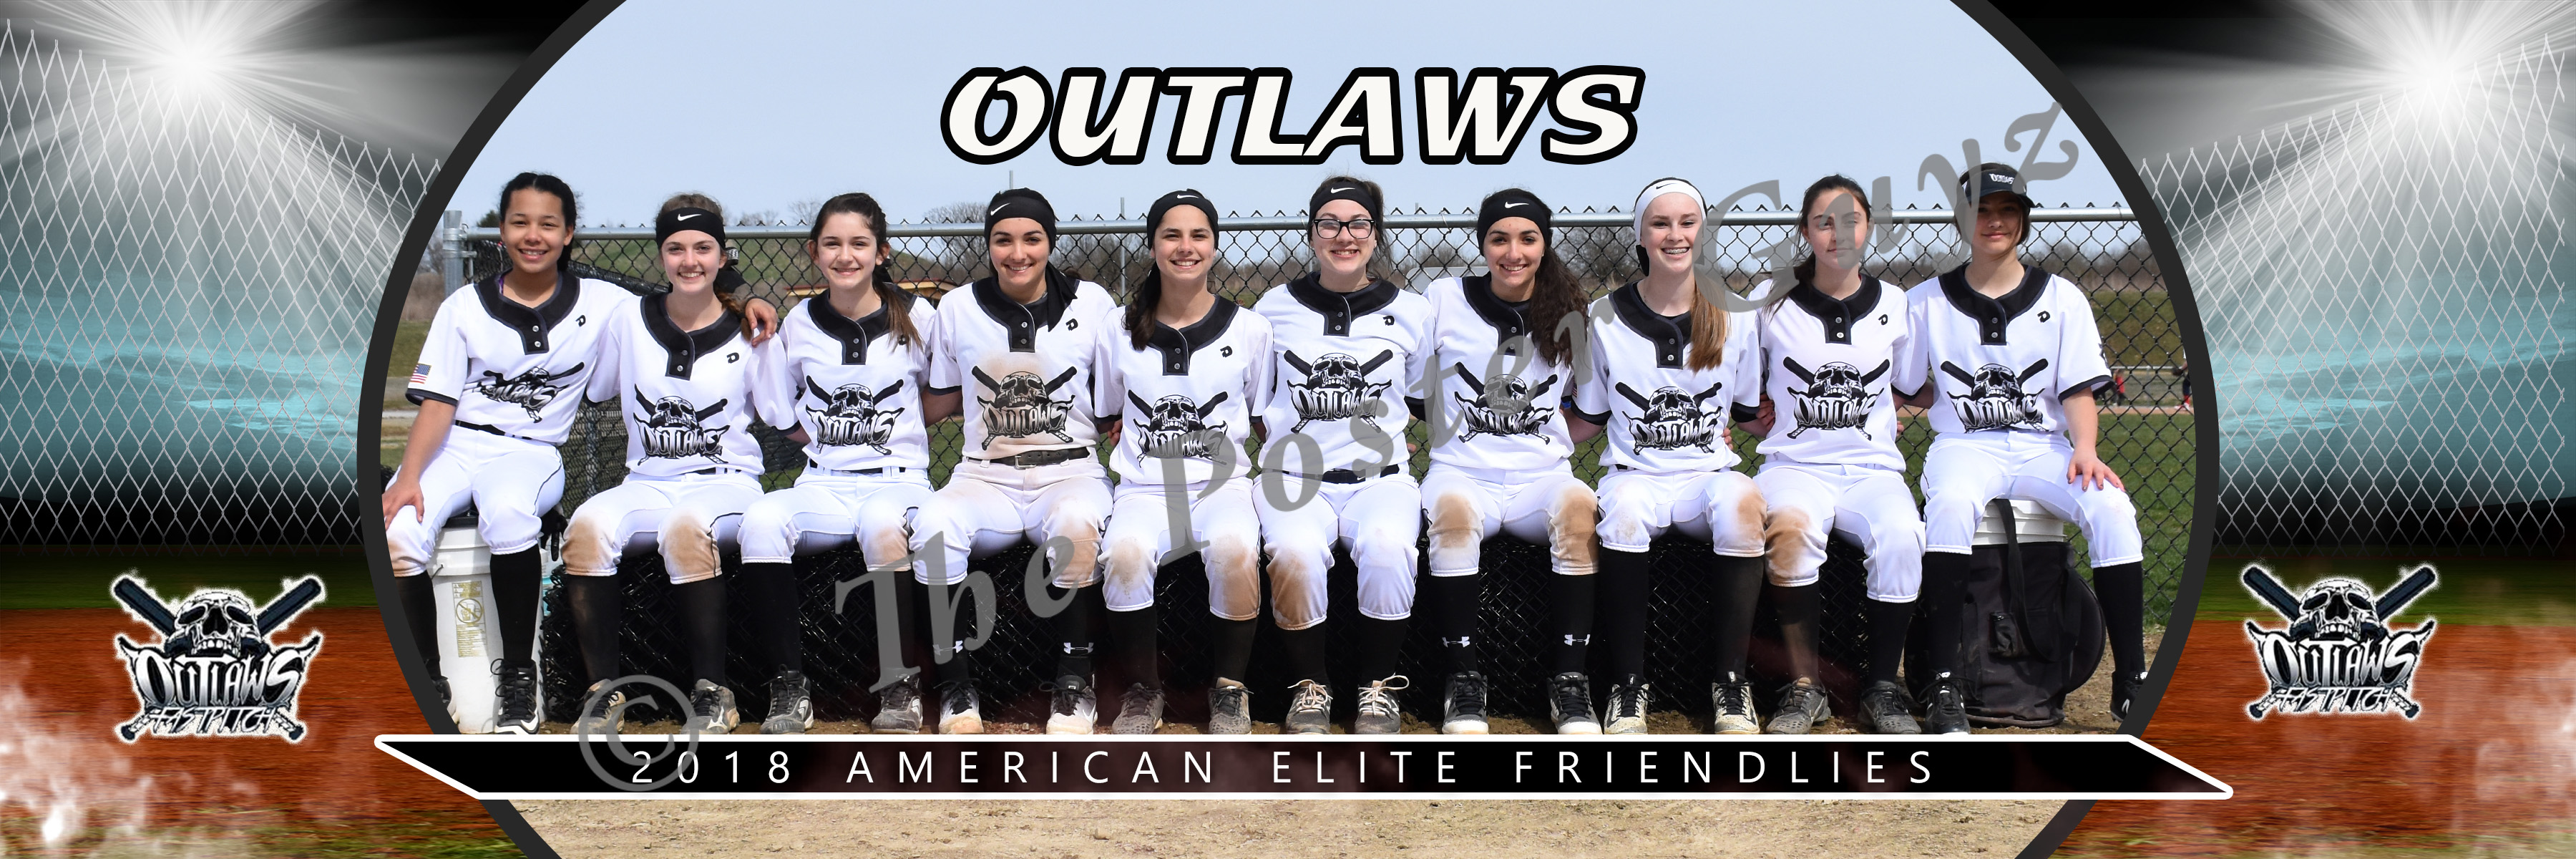 Outlaws Rapp u14